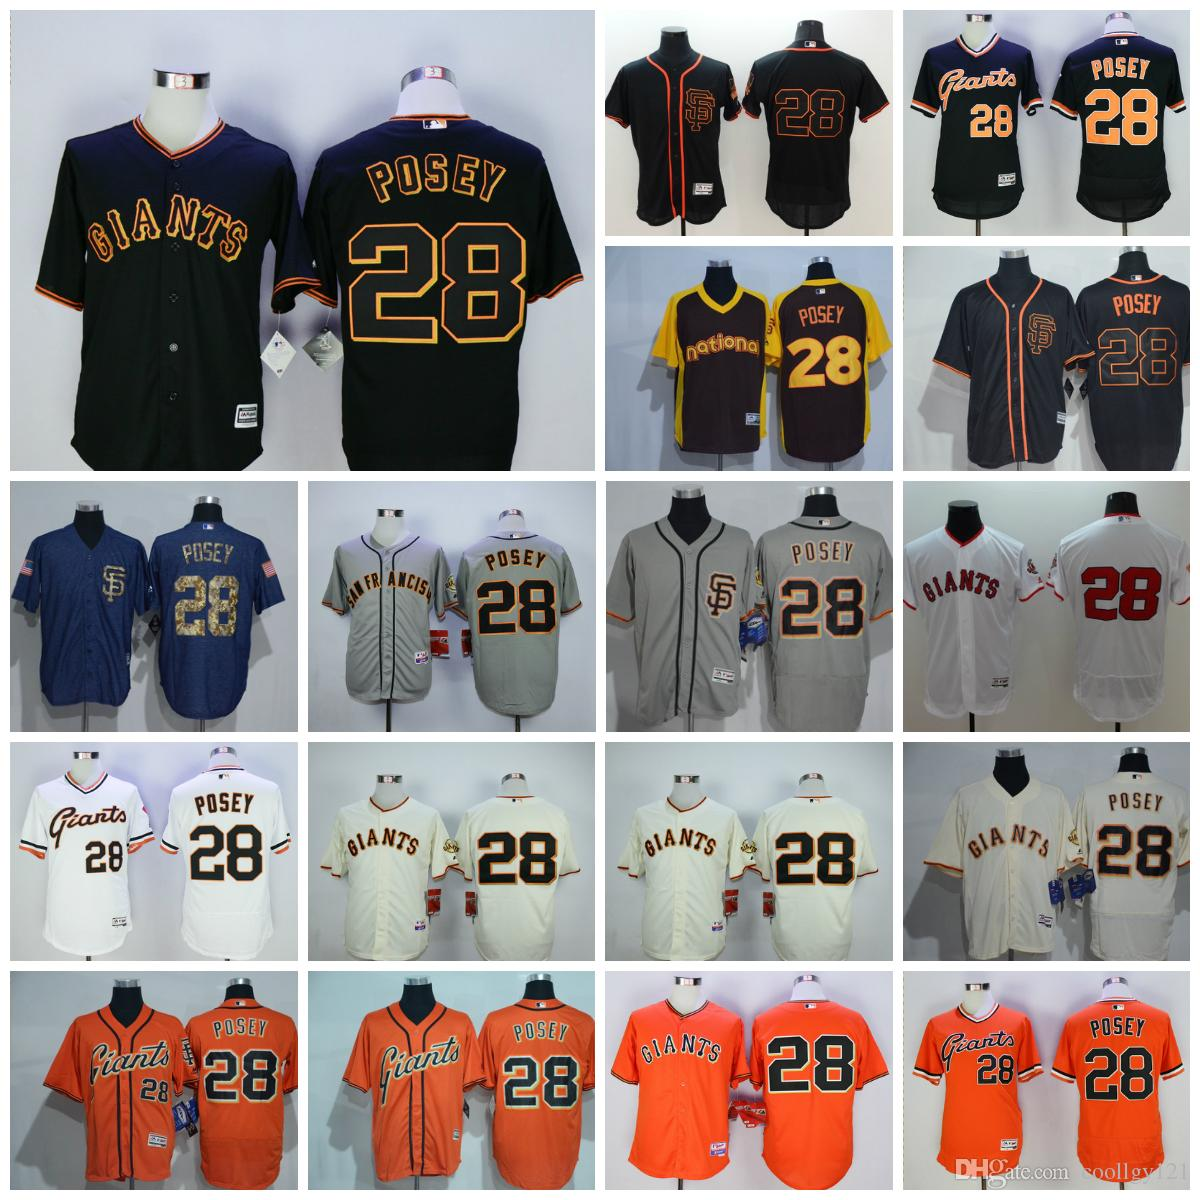 a8f135986 ... inexpensive buster posey jersey color white black gray stitched  throwback jerseys see larger image san francisco